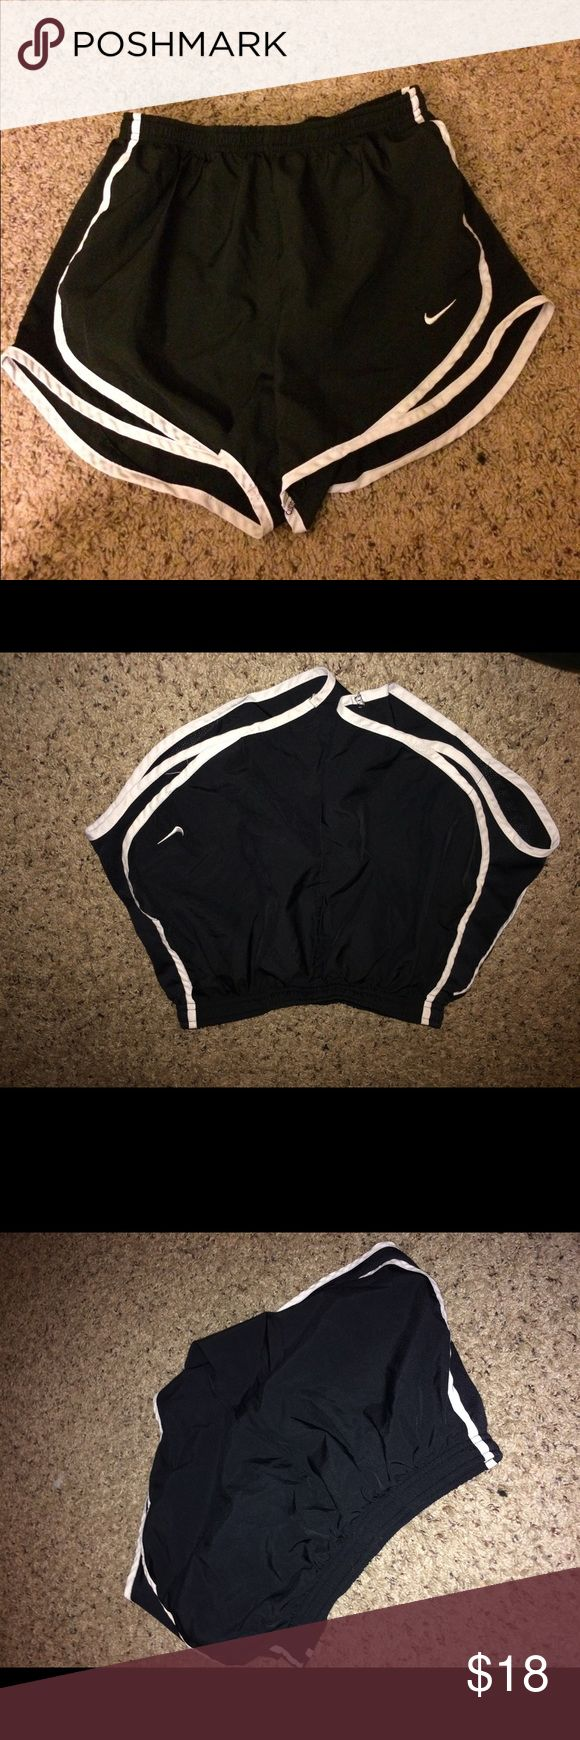 Nike Dri Fit Tempo Shorts Black and white nike Dri fit workout shirts. Two pairs in a small. Like new. No trades Nike Shorts